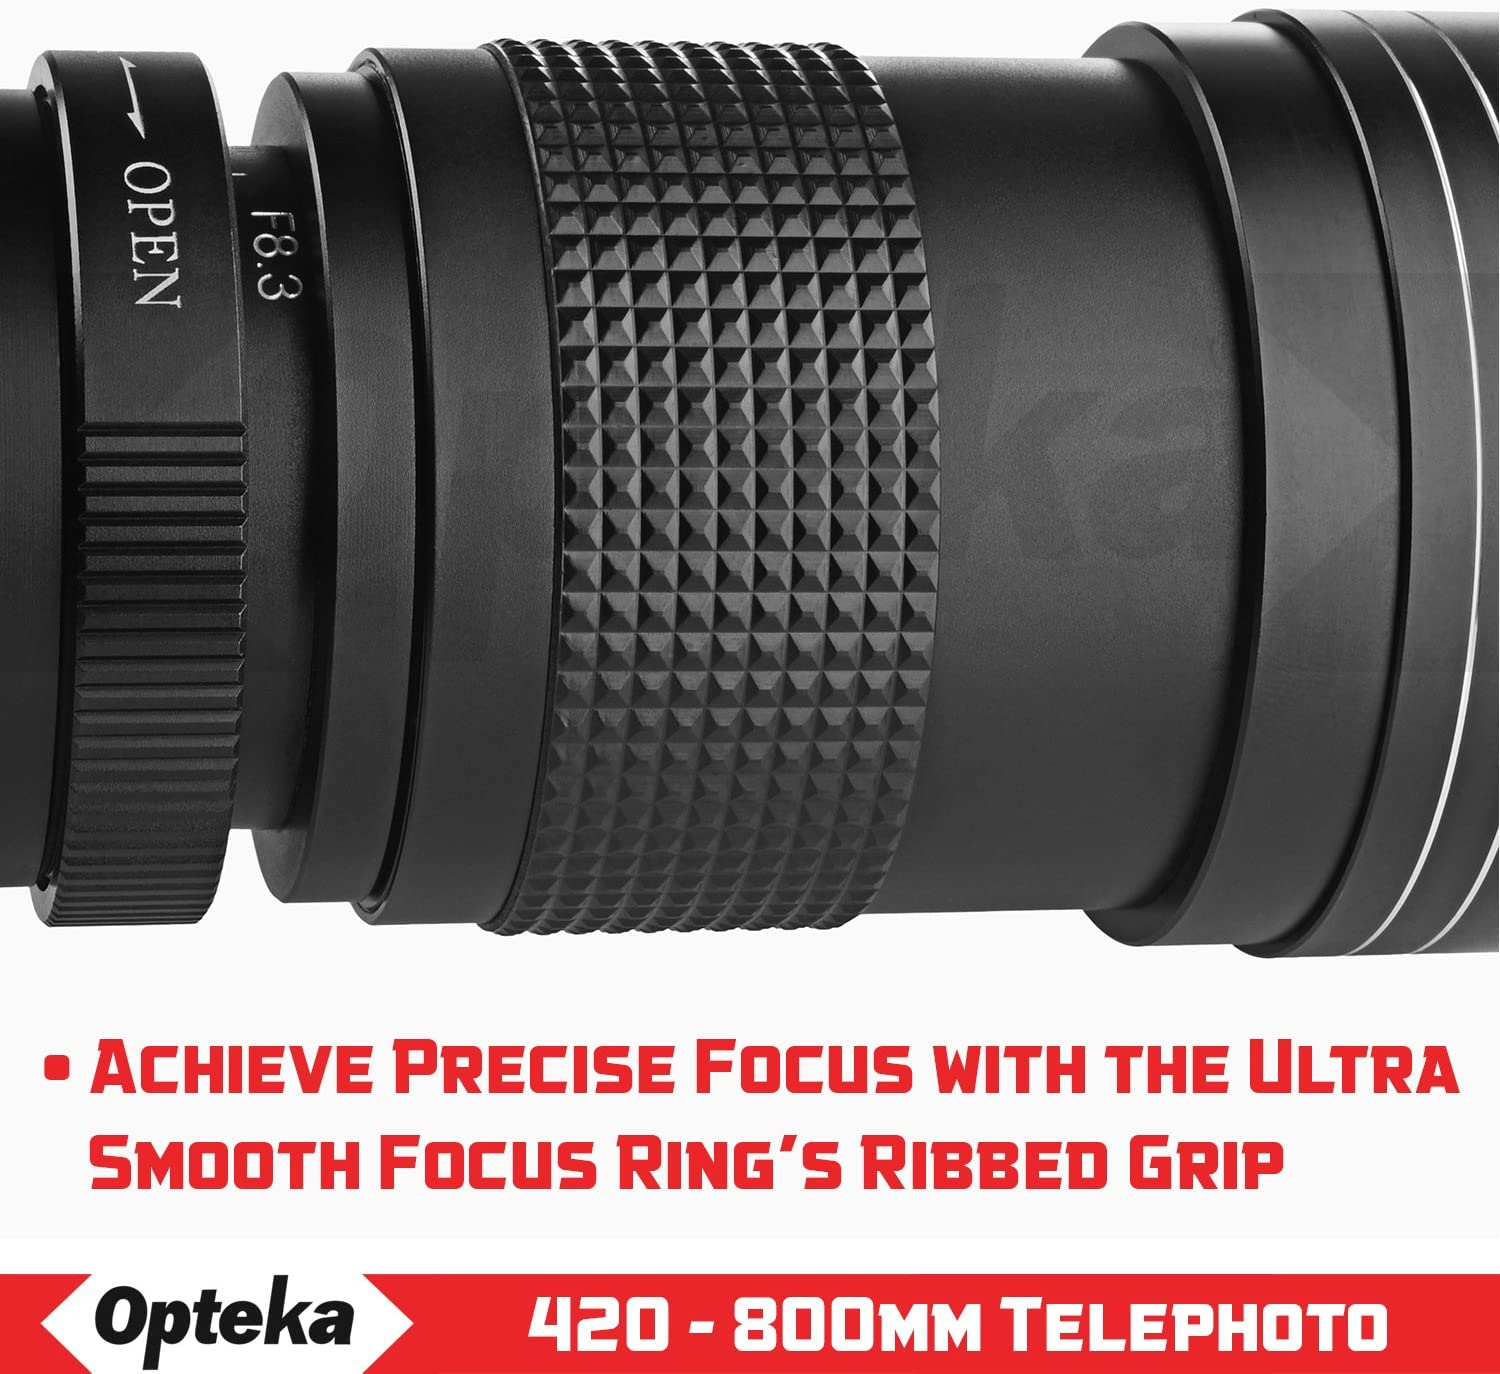 T3 T20 f//8.3 HD Telephoto Zoom Lens for Fuji Fujifilm X-Mount X-Pro3 T1 Opteka 420-800mm E3 T30 T10 E2 and T100 Digital Cameras w// 2X- 840-1600mm H1 A3 A2 T2 A5 A1 A7 Pro2